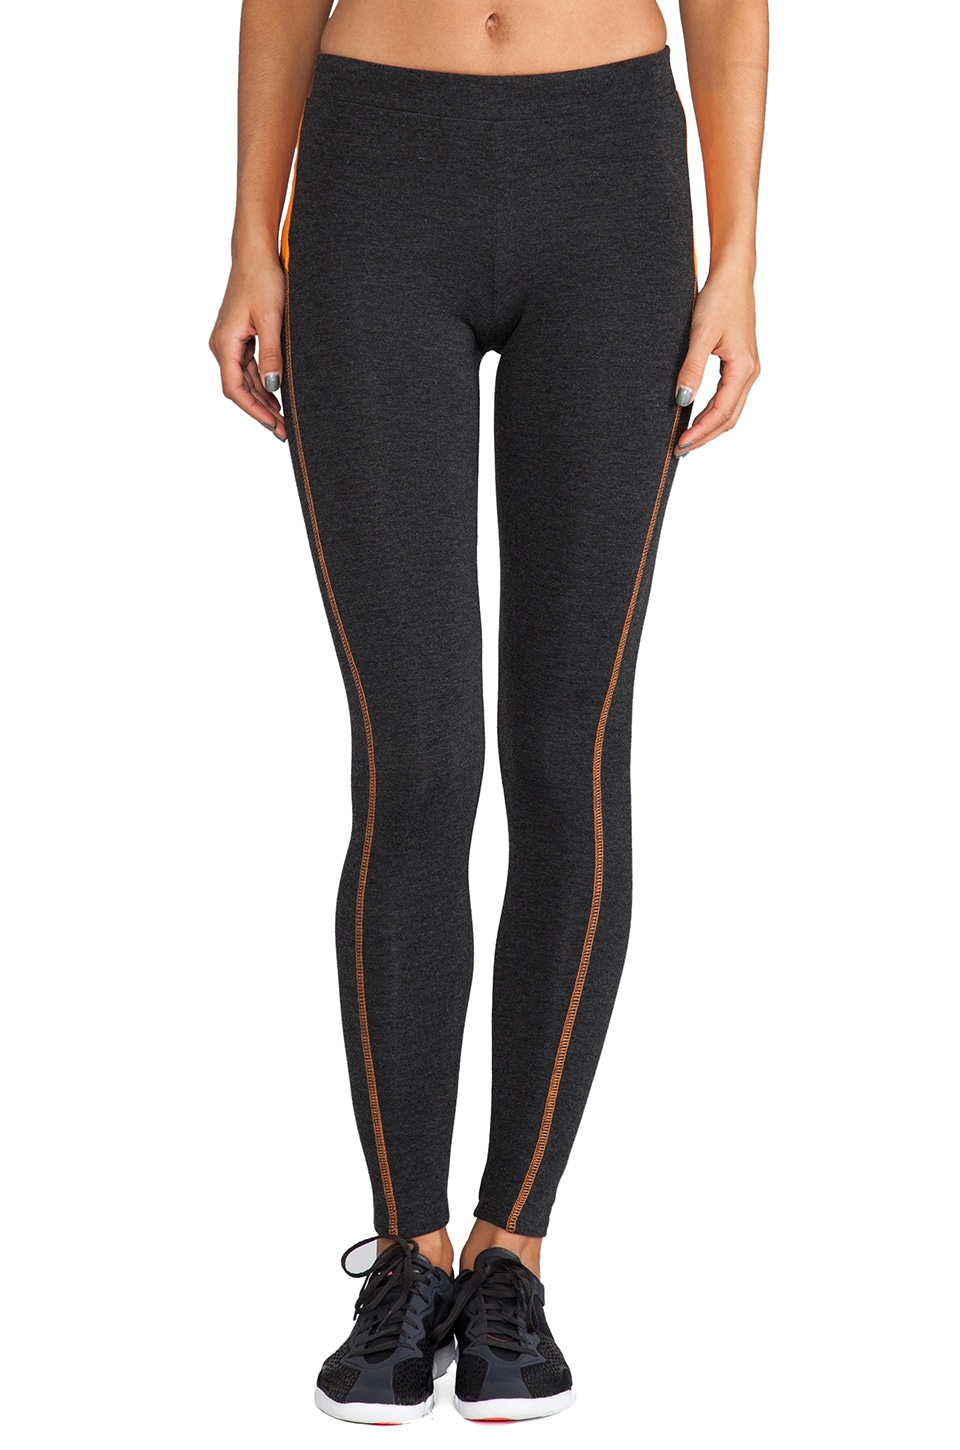 SOLOW 90/10 Legging with Contrast in Charcoal/Monarch/Quartz